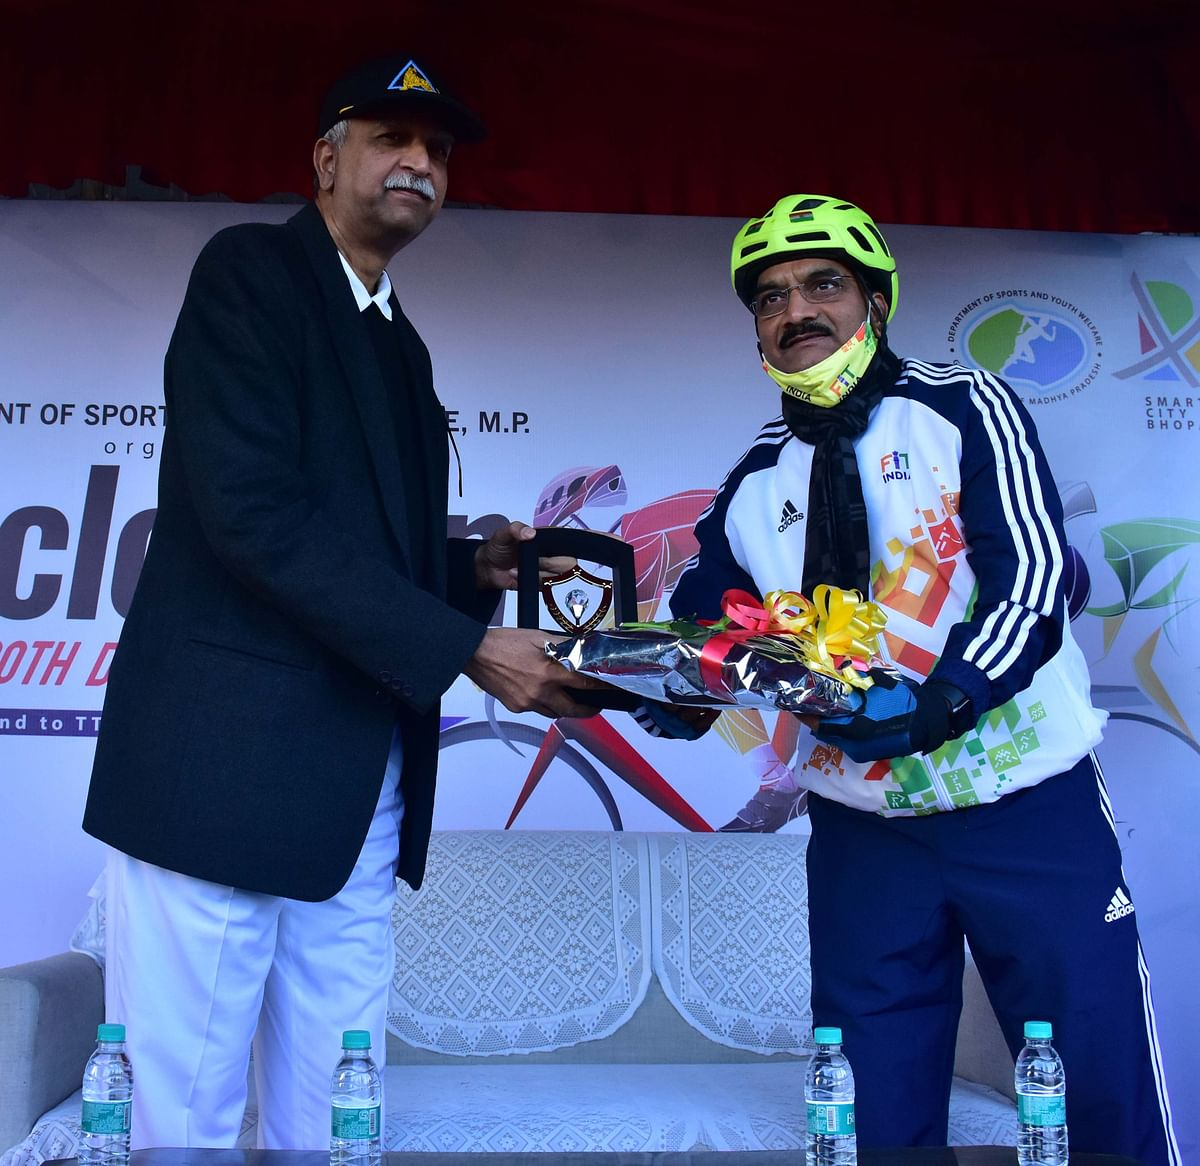 DGP Vivek Johri distributes prizes to participants of Cyclothon organised on Sunday by BMC under the 'Fit India' programme.